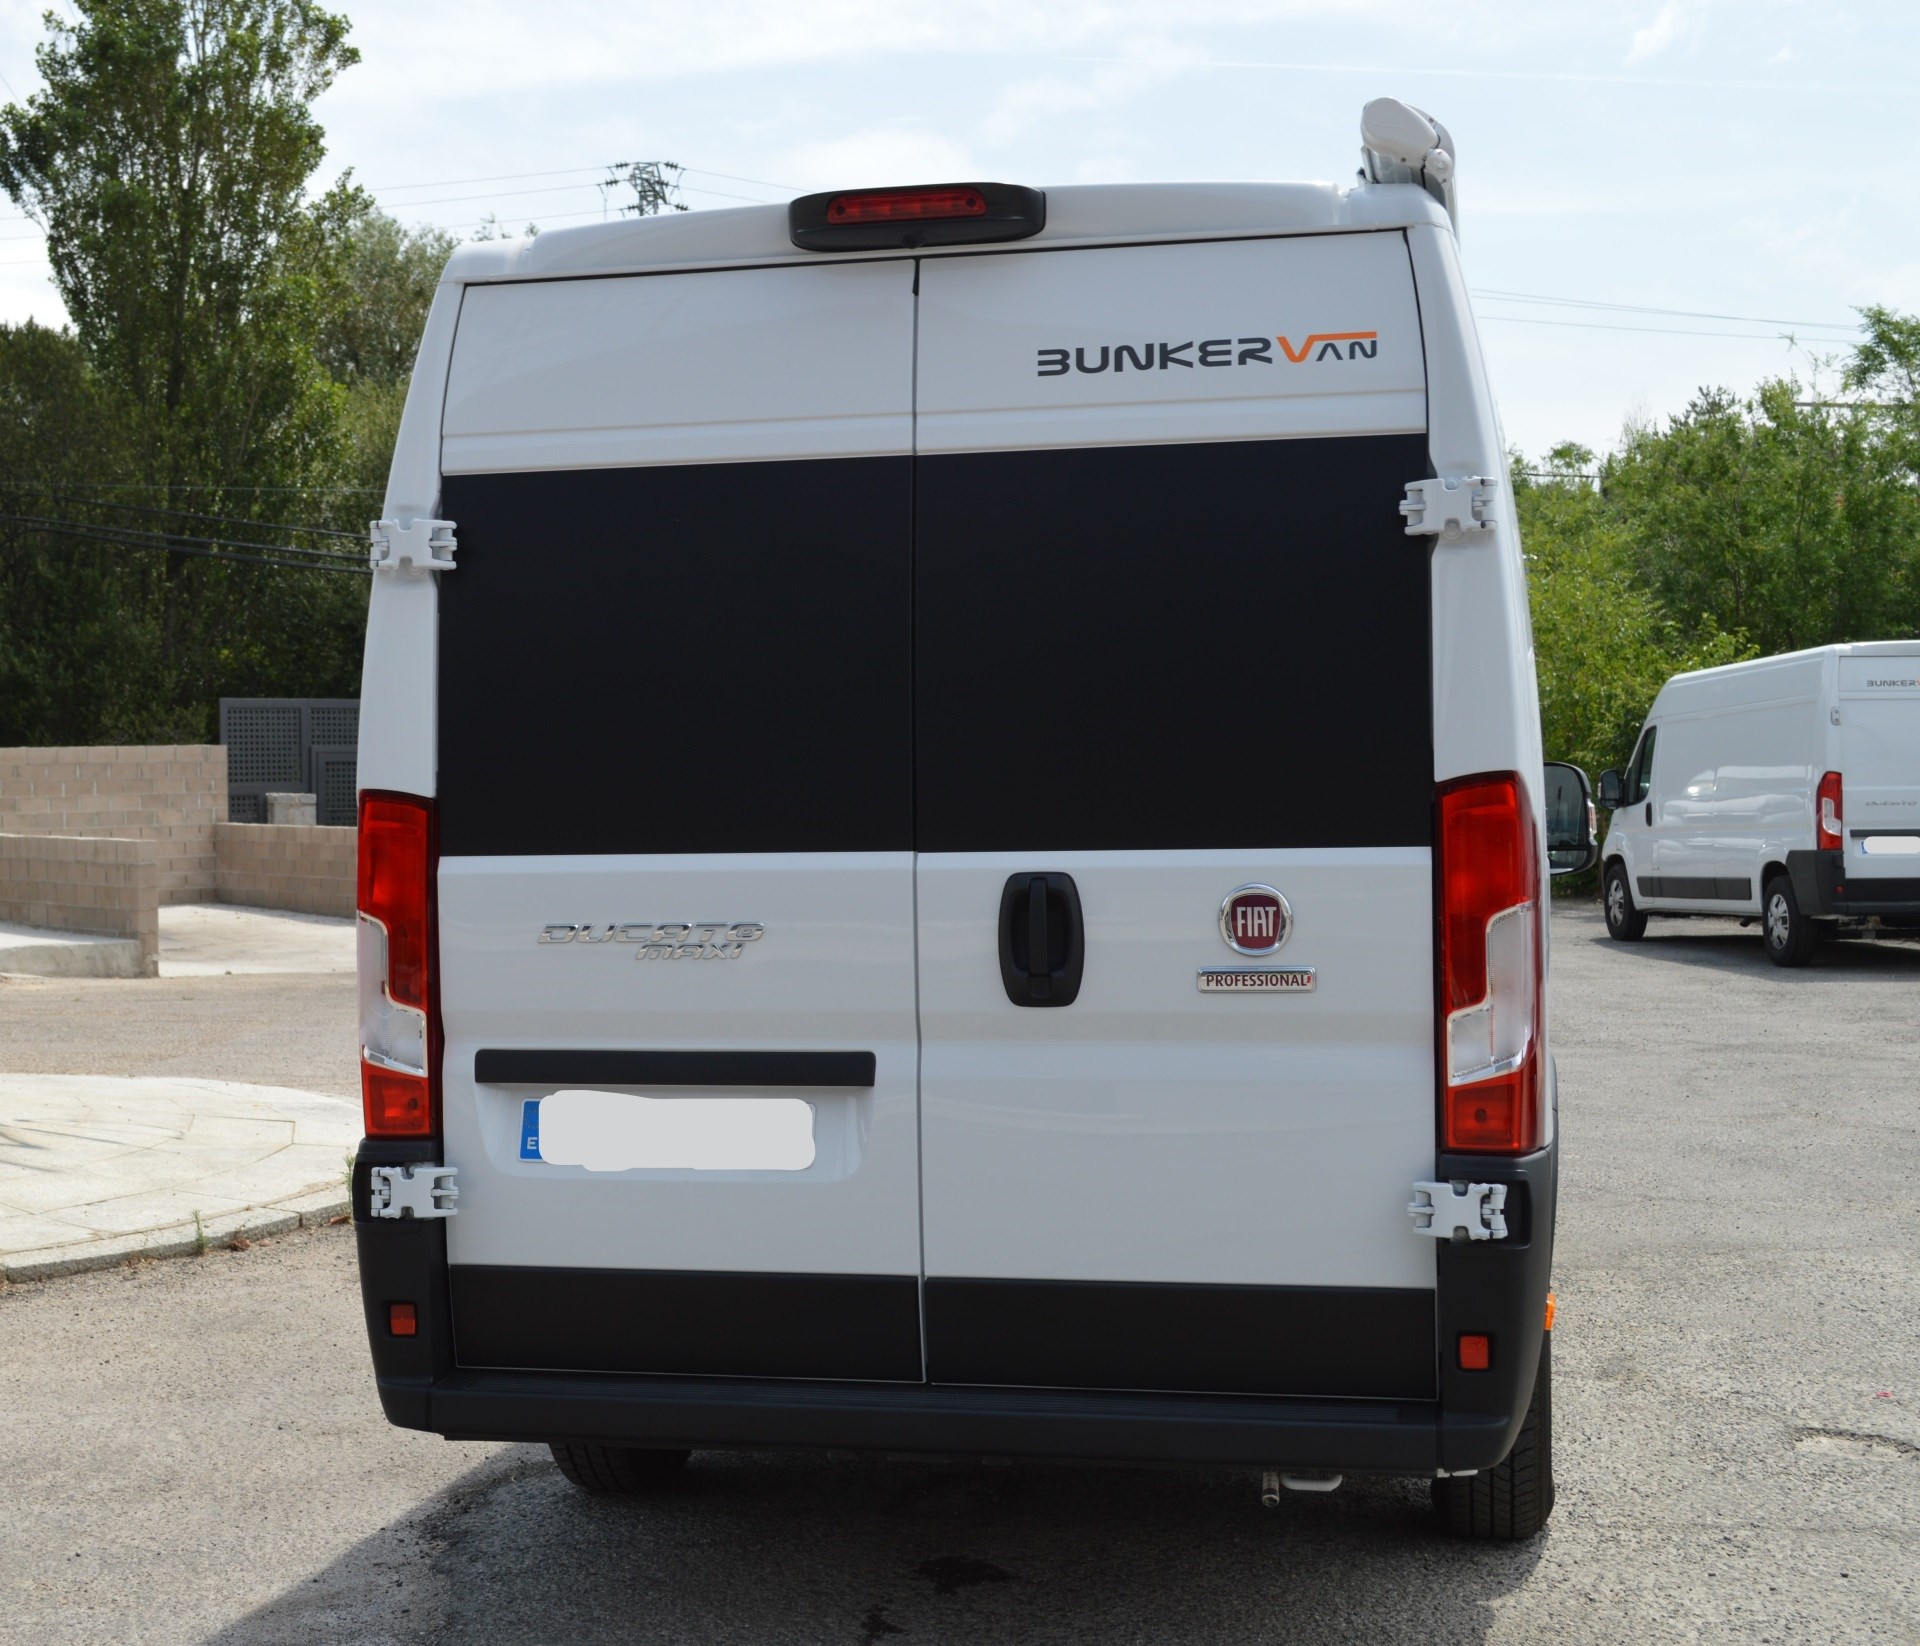 Team Travel 636 L4H2 Fiat Ducato Bunkervan (28)